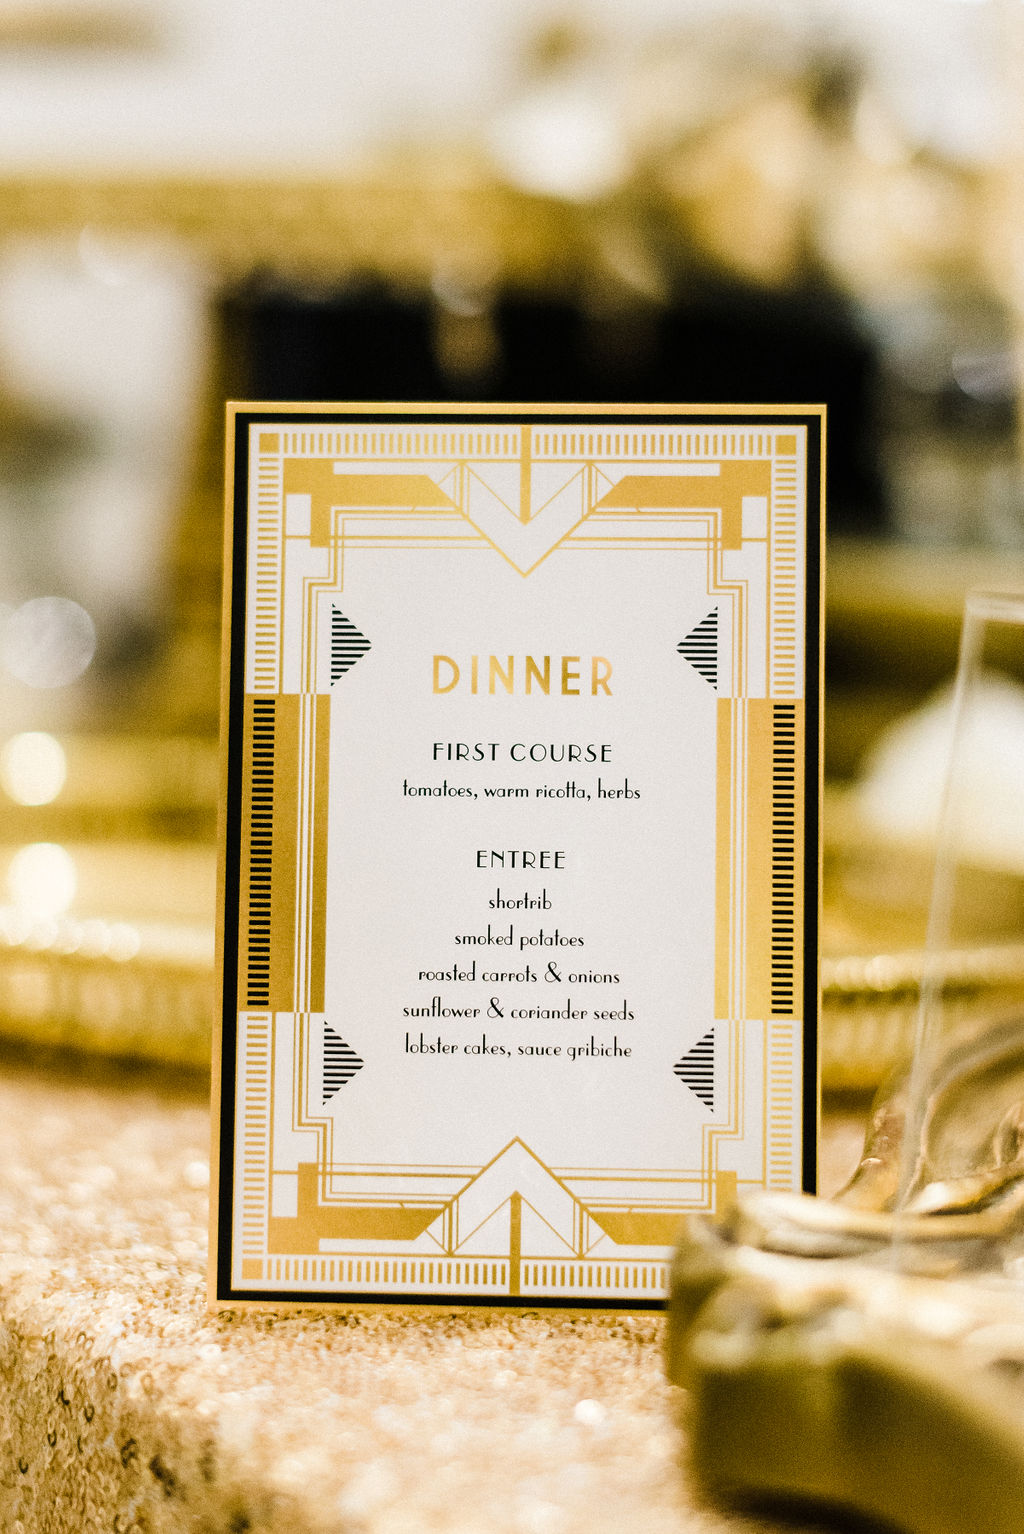 Porrona and Pina (Tyler Anderson's) wedding menu at The Goodwin Hotel - Pearl Weddings & Events